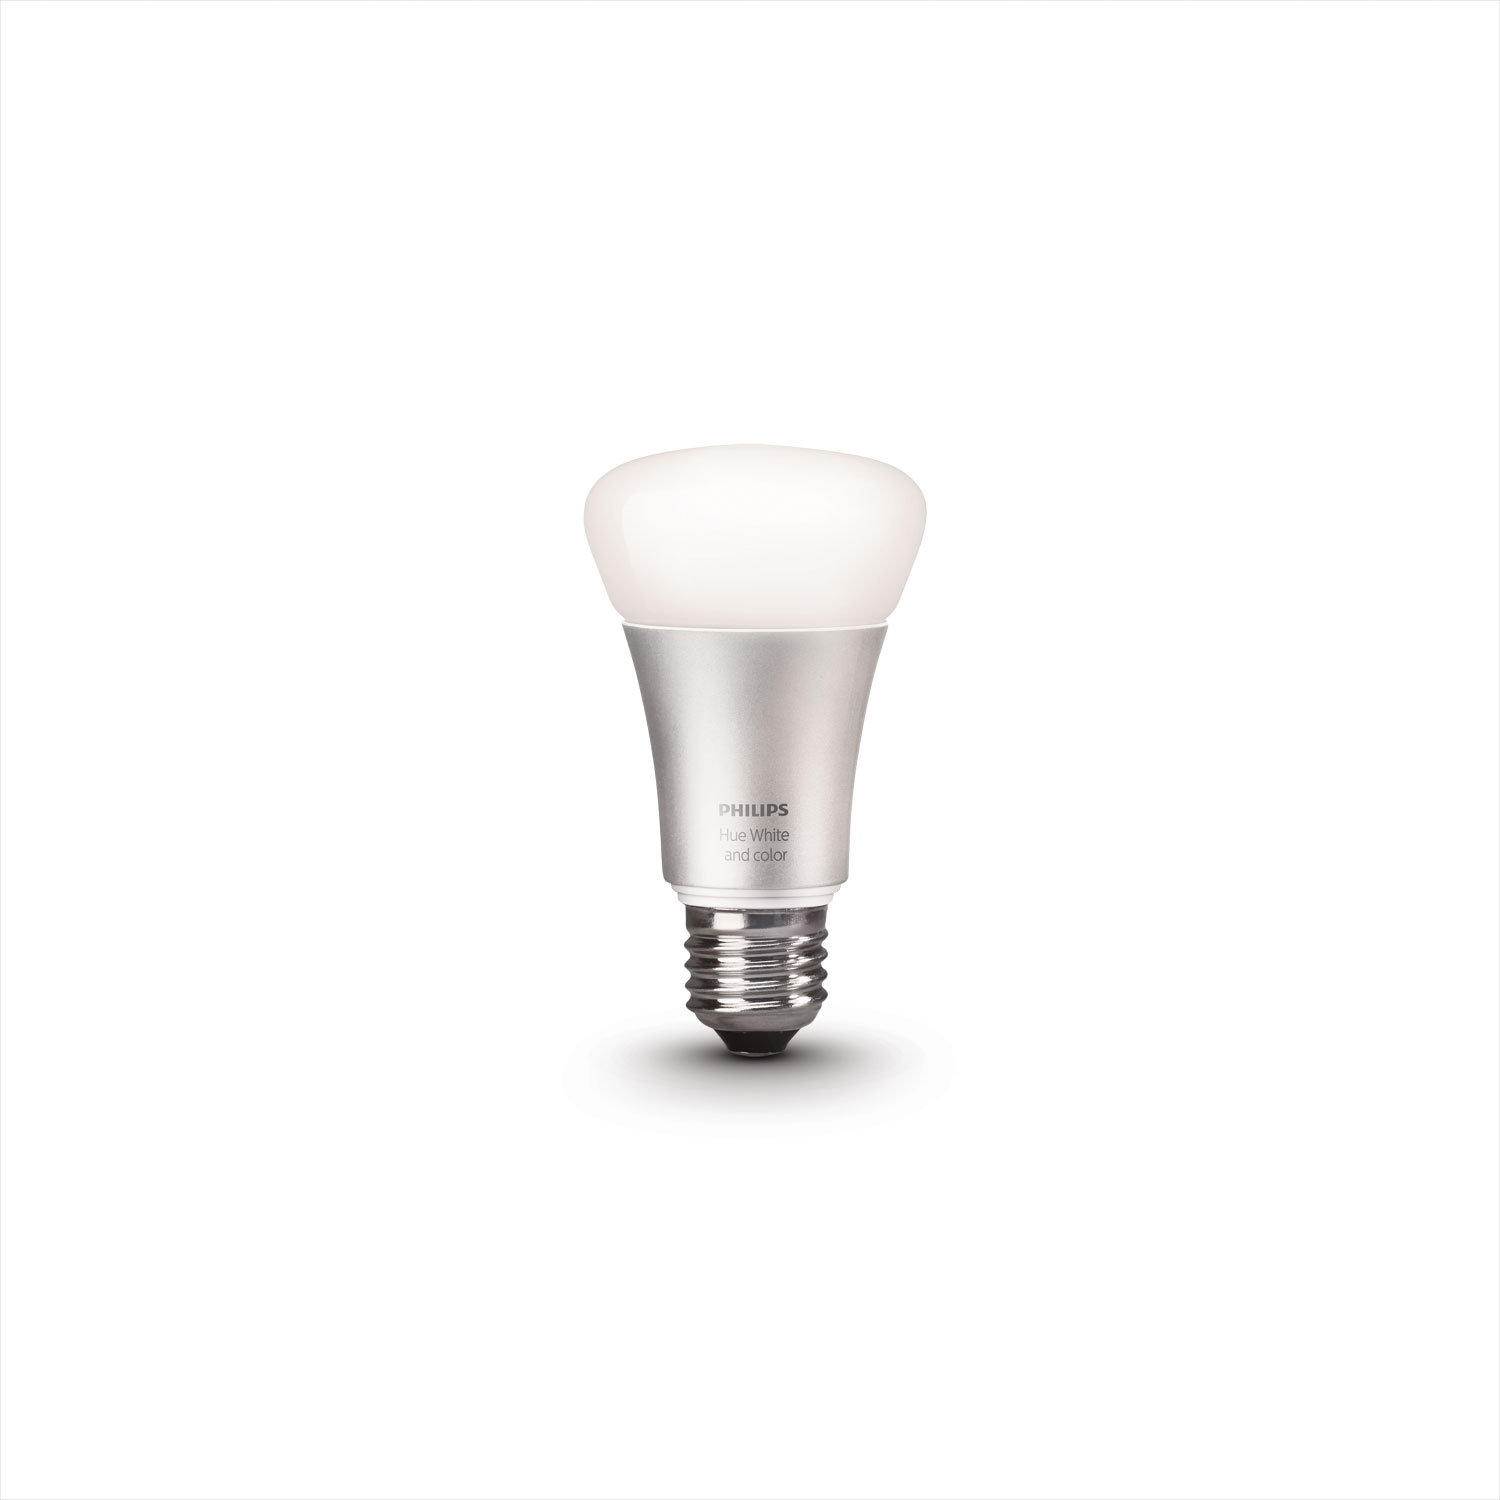 philips hue white color e27 a60 ampoule connect e philips sur ldlc. Black Bedroom Furniture Sets. Home Design Ideas